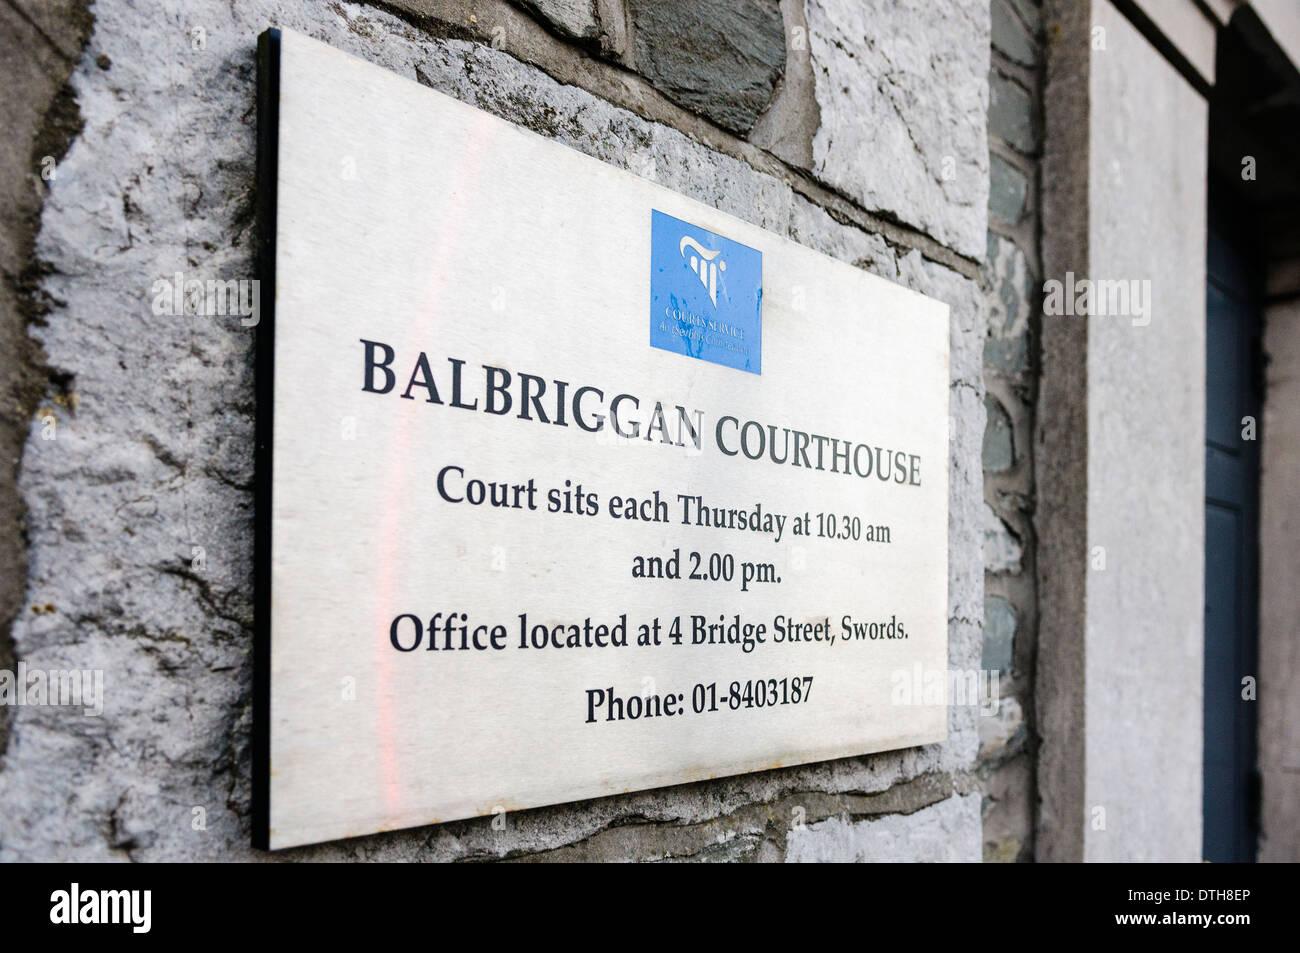 Balbriggan Courthouse - Stock Image